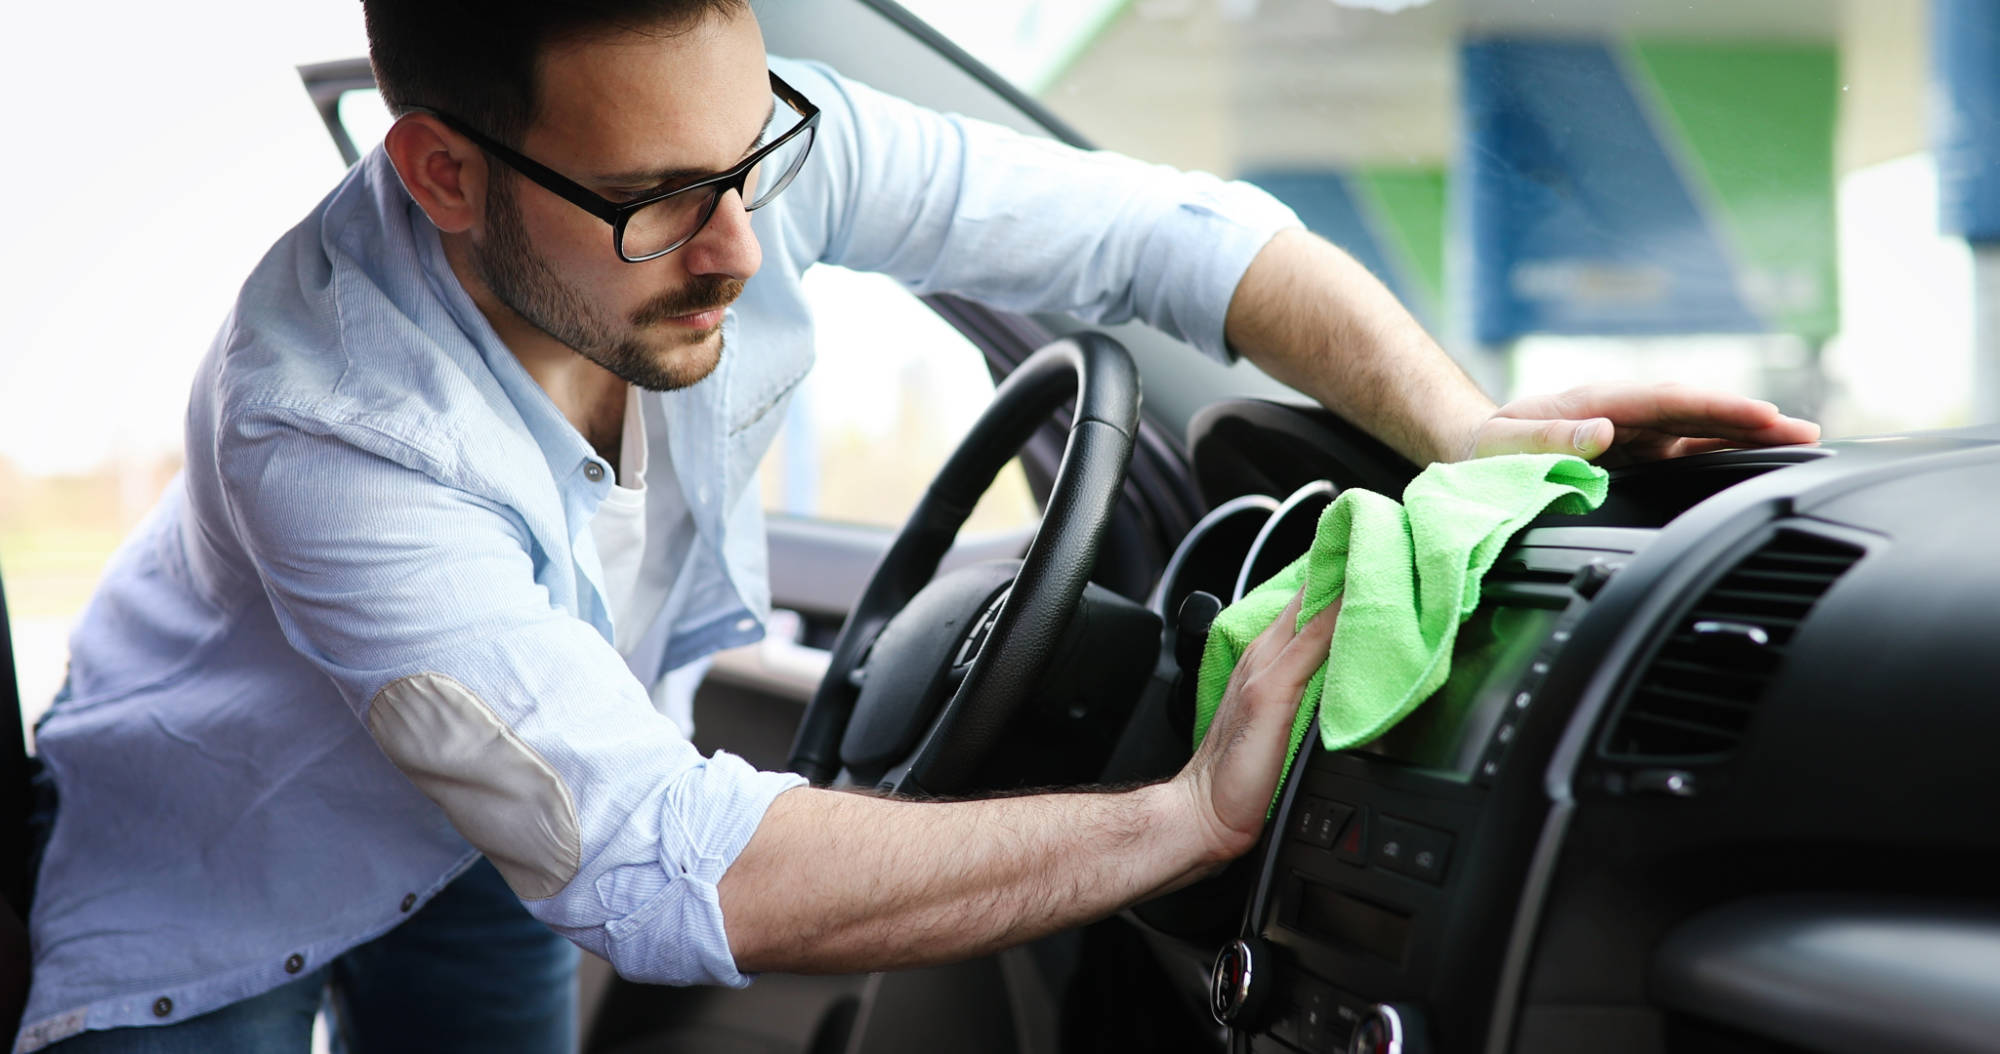 person-cleaning-car-with-microfiber-clot-and-maint-354MWYG.jpg